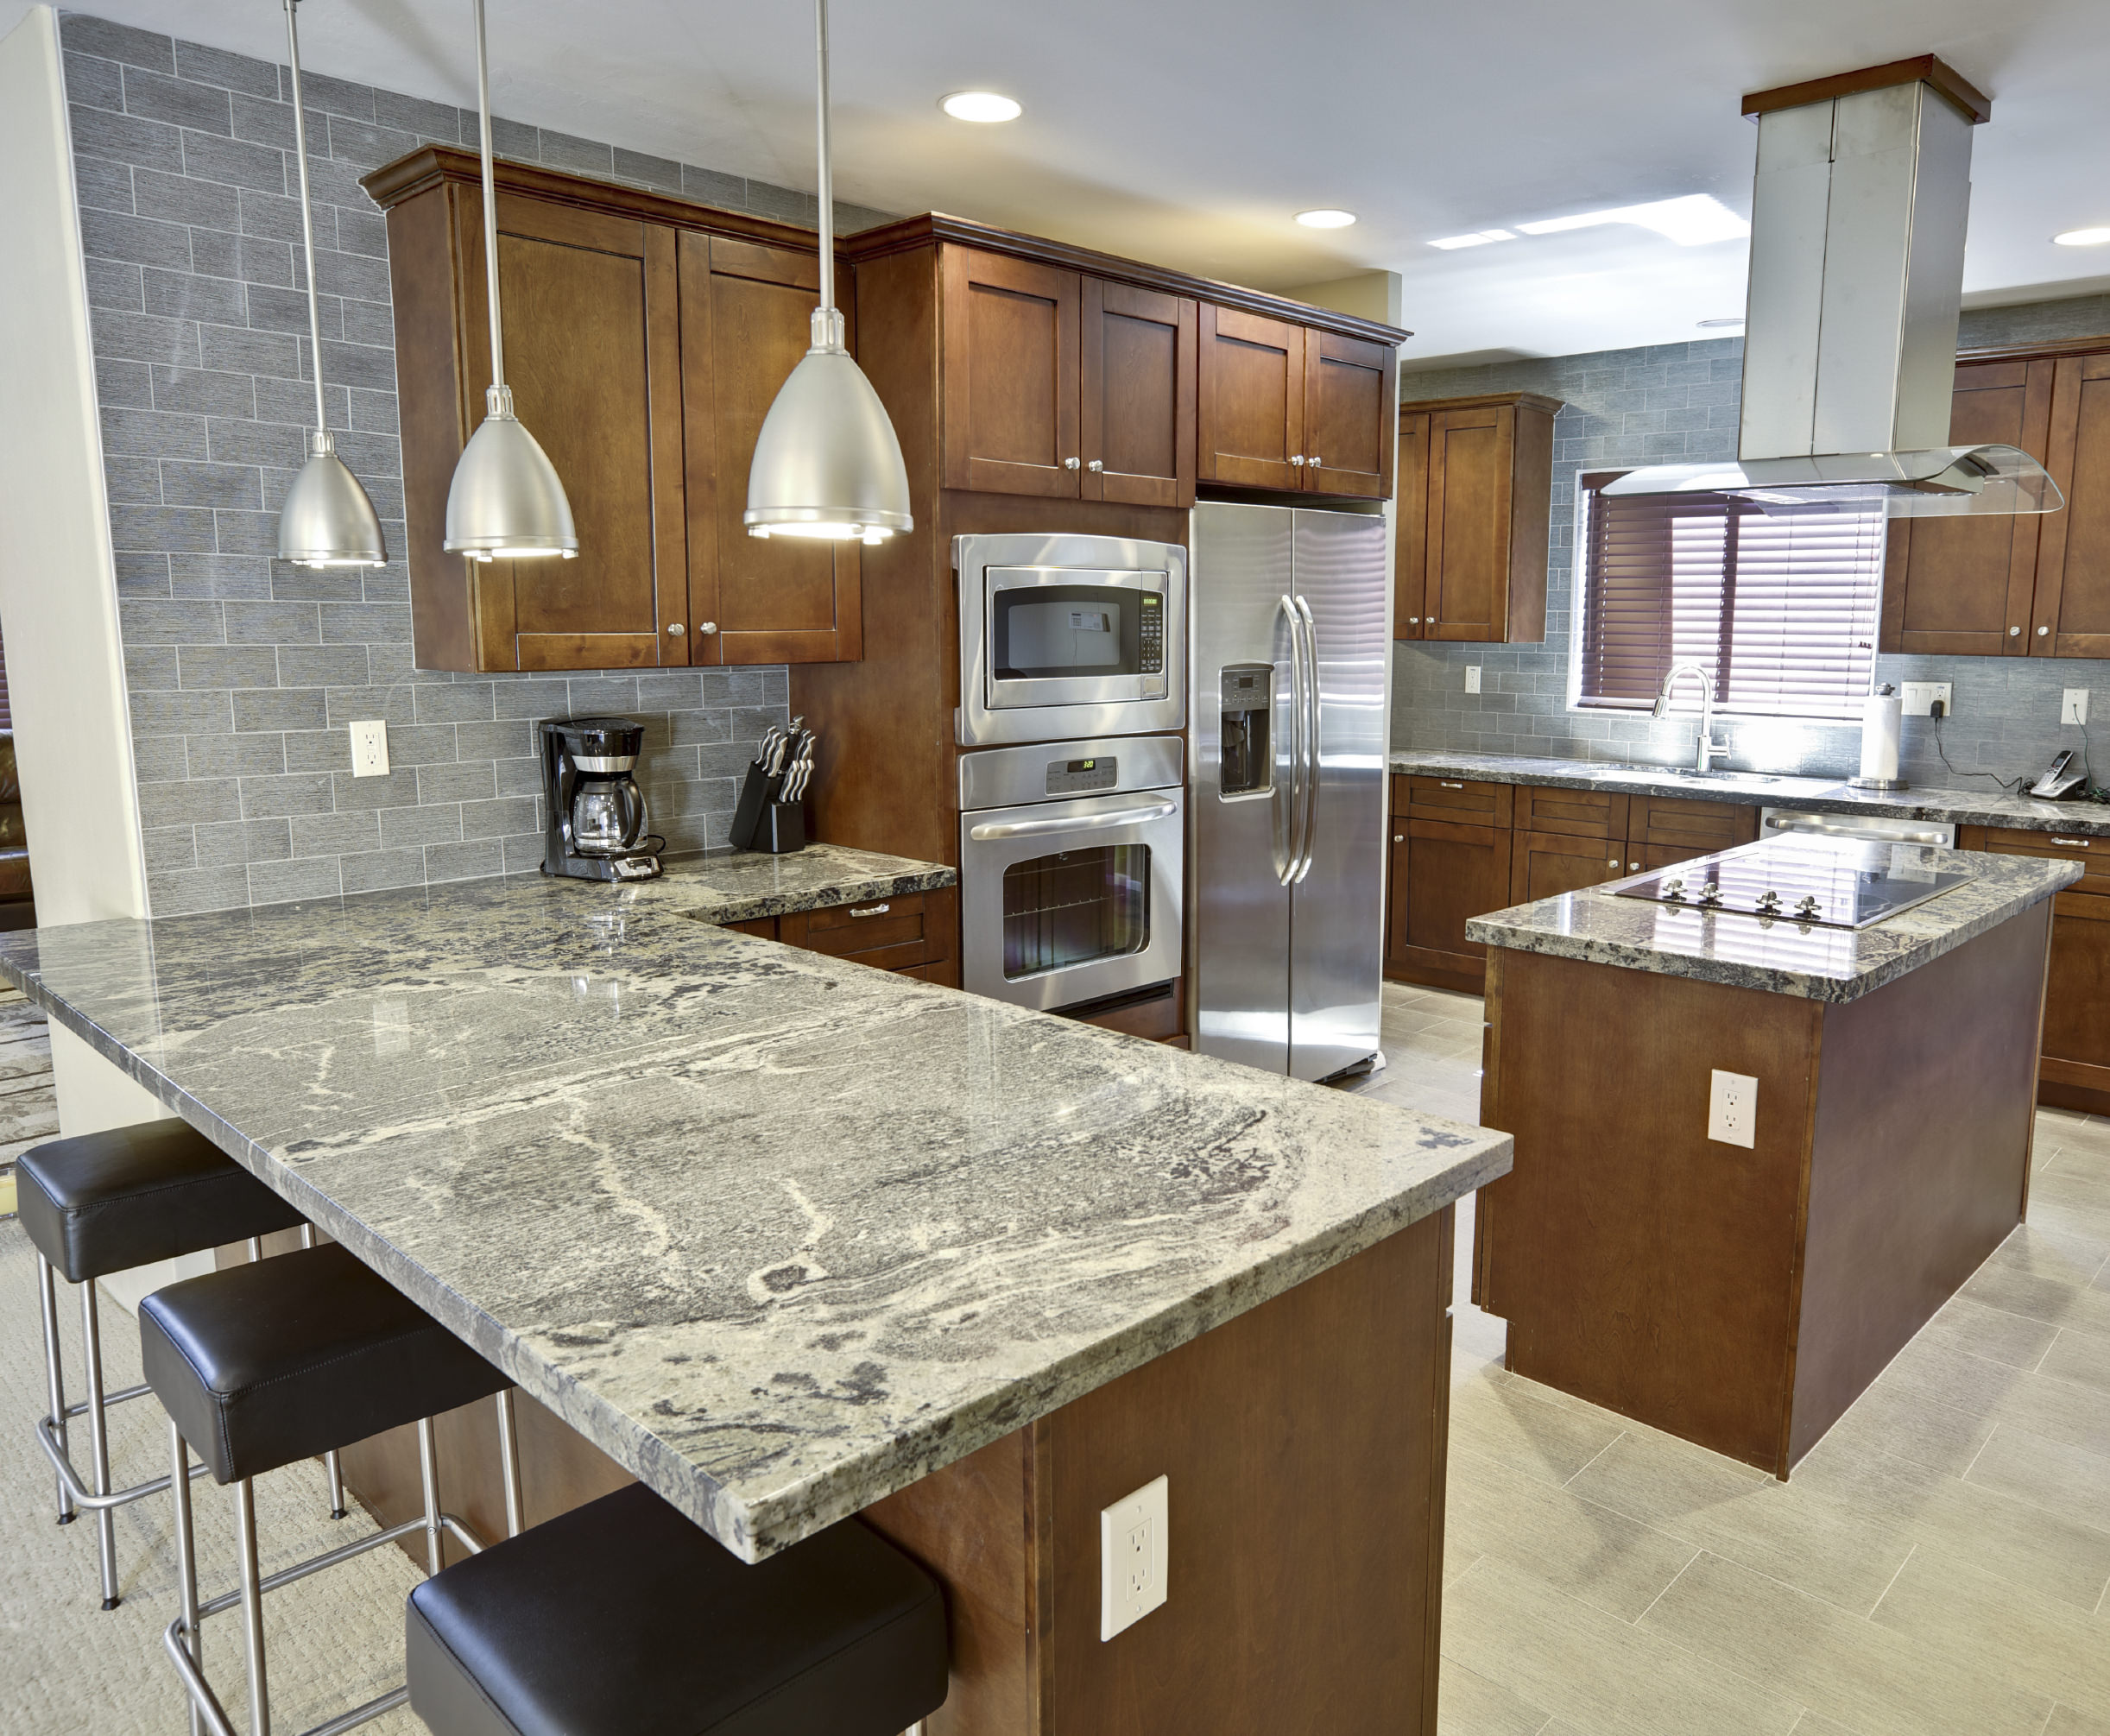 Kitchen with a breakfast bar featuring stylish kitchen and island countertop. A ceiling lighted by recessed and pendant lights, along with gray tiles walls.